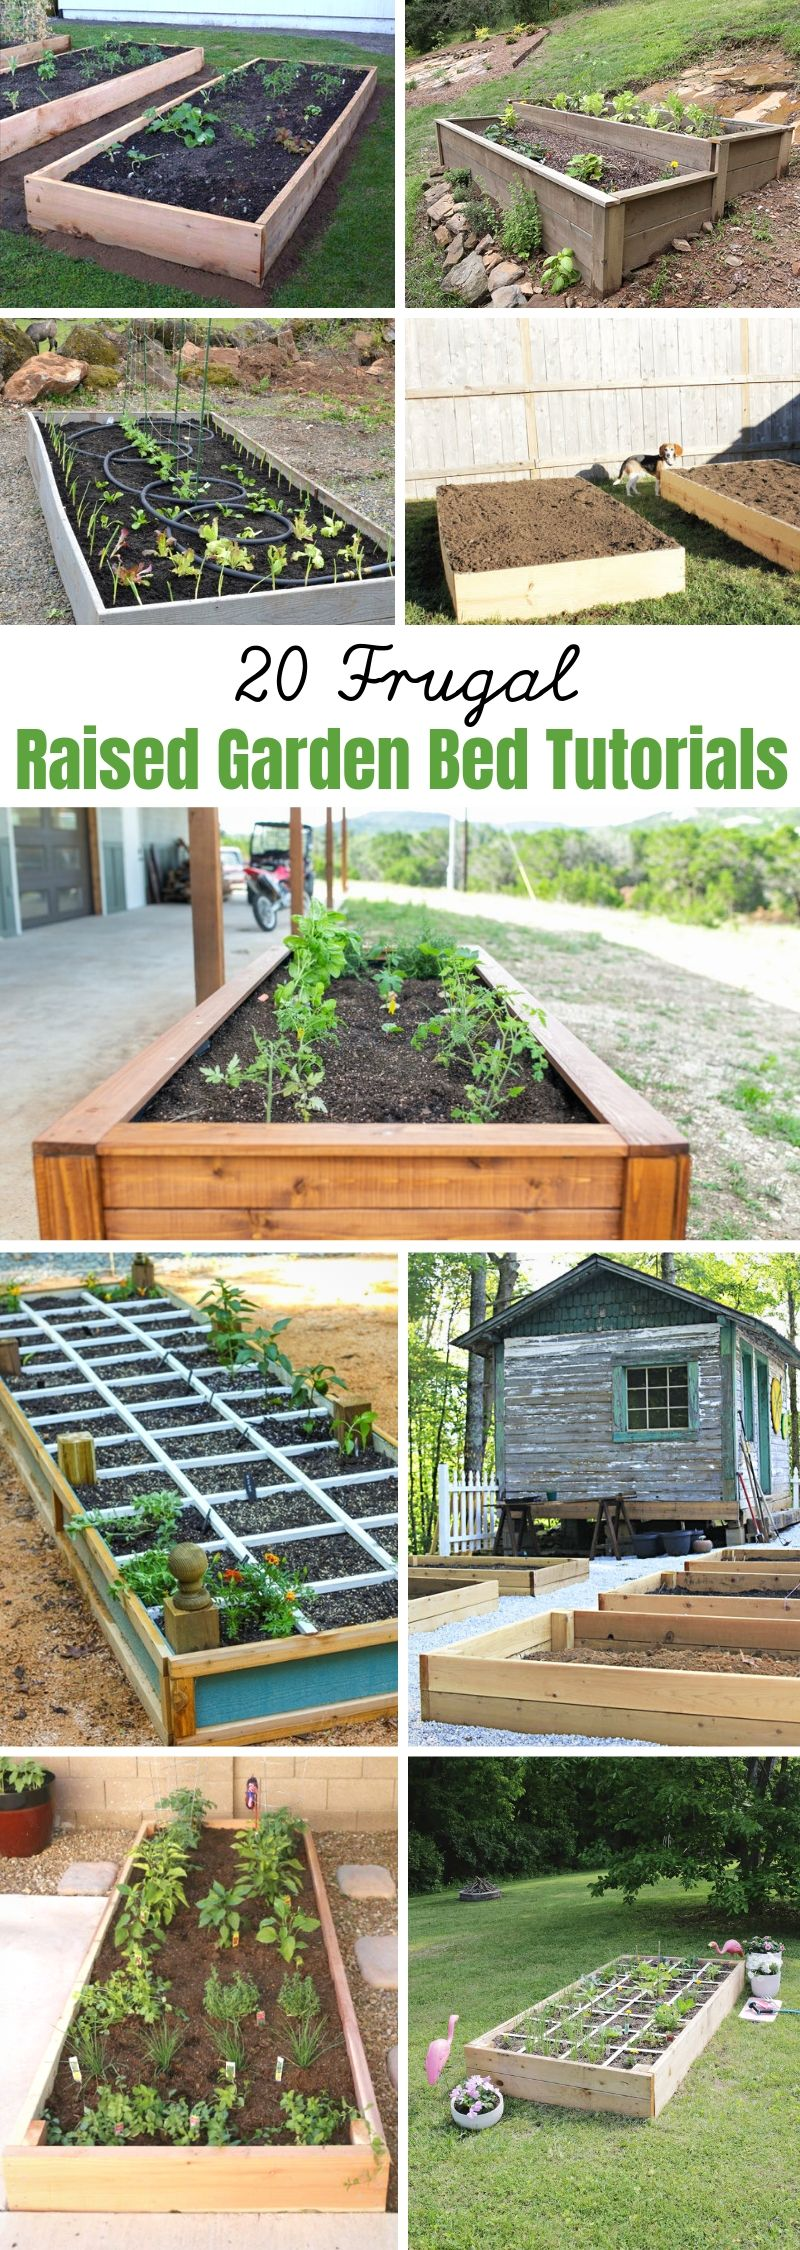 Raised Garden Bed Tutorials